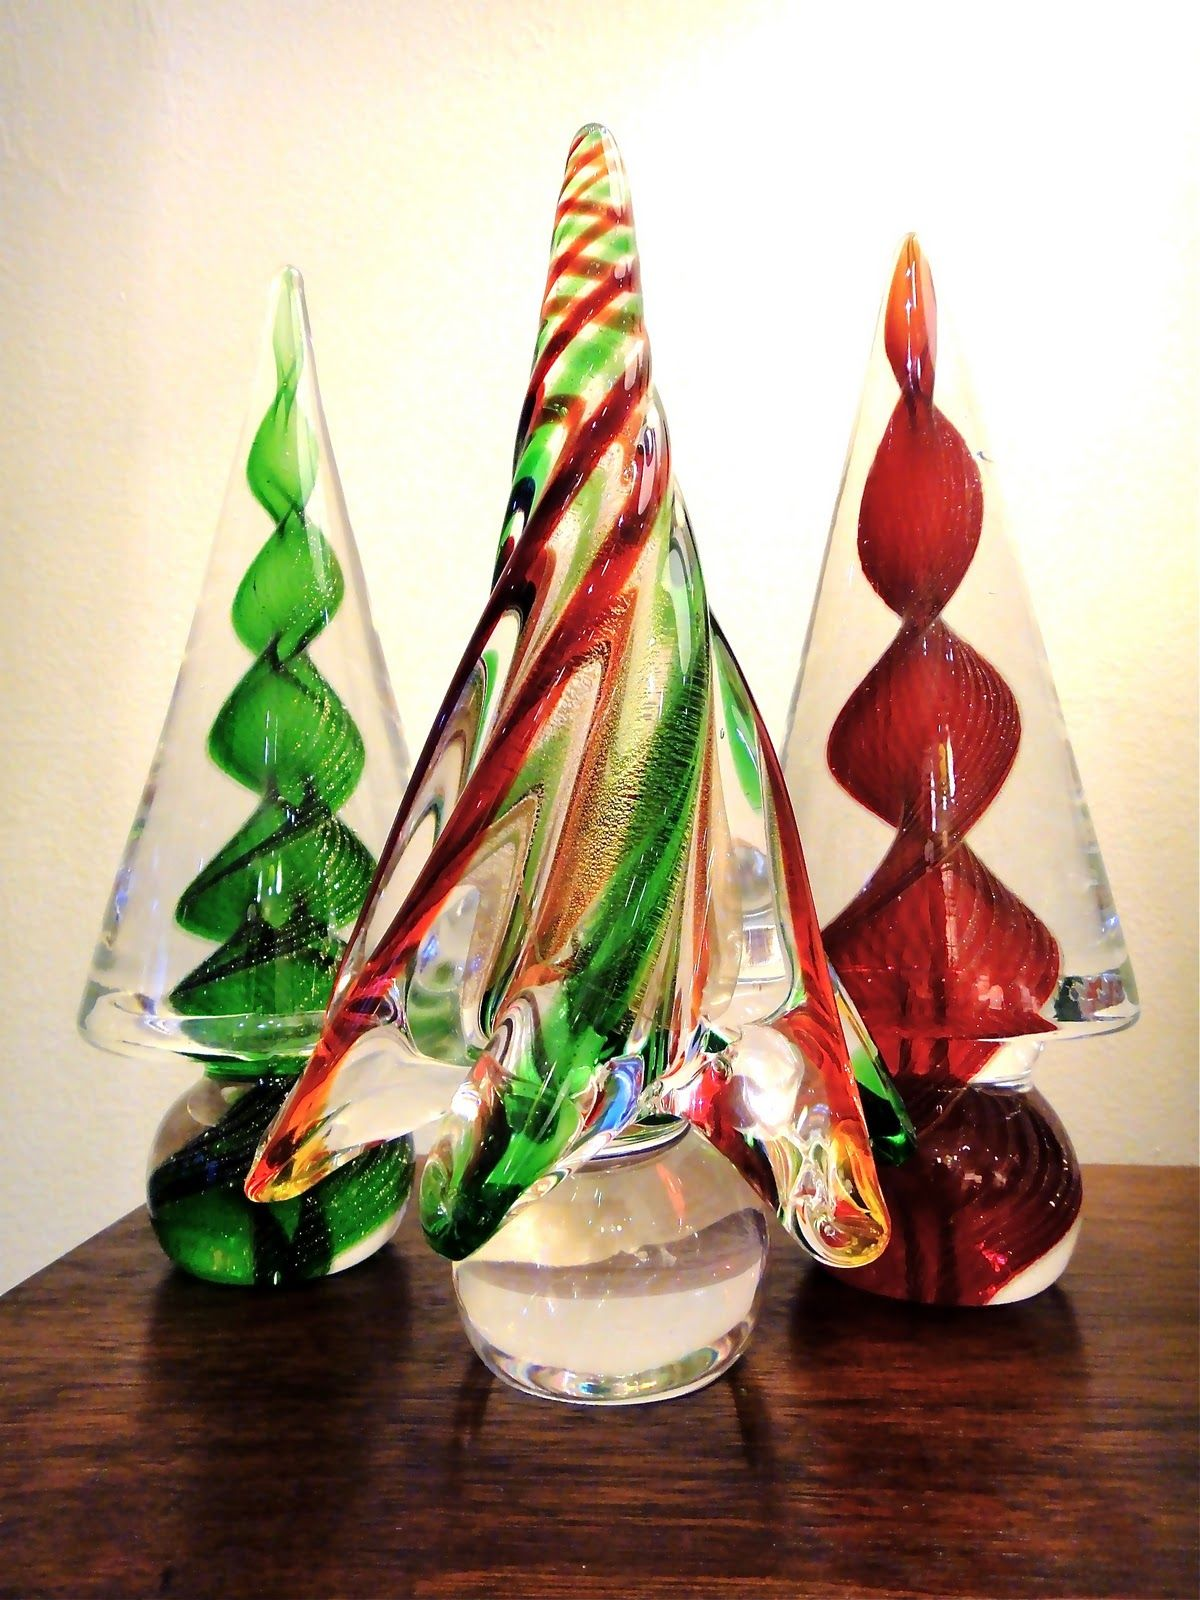 murano glass christmas trees | Art Glass from Venice Italy in 2018 ...